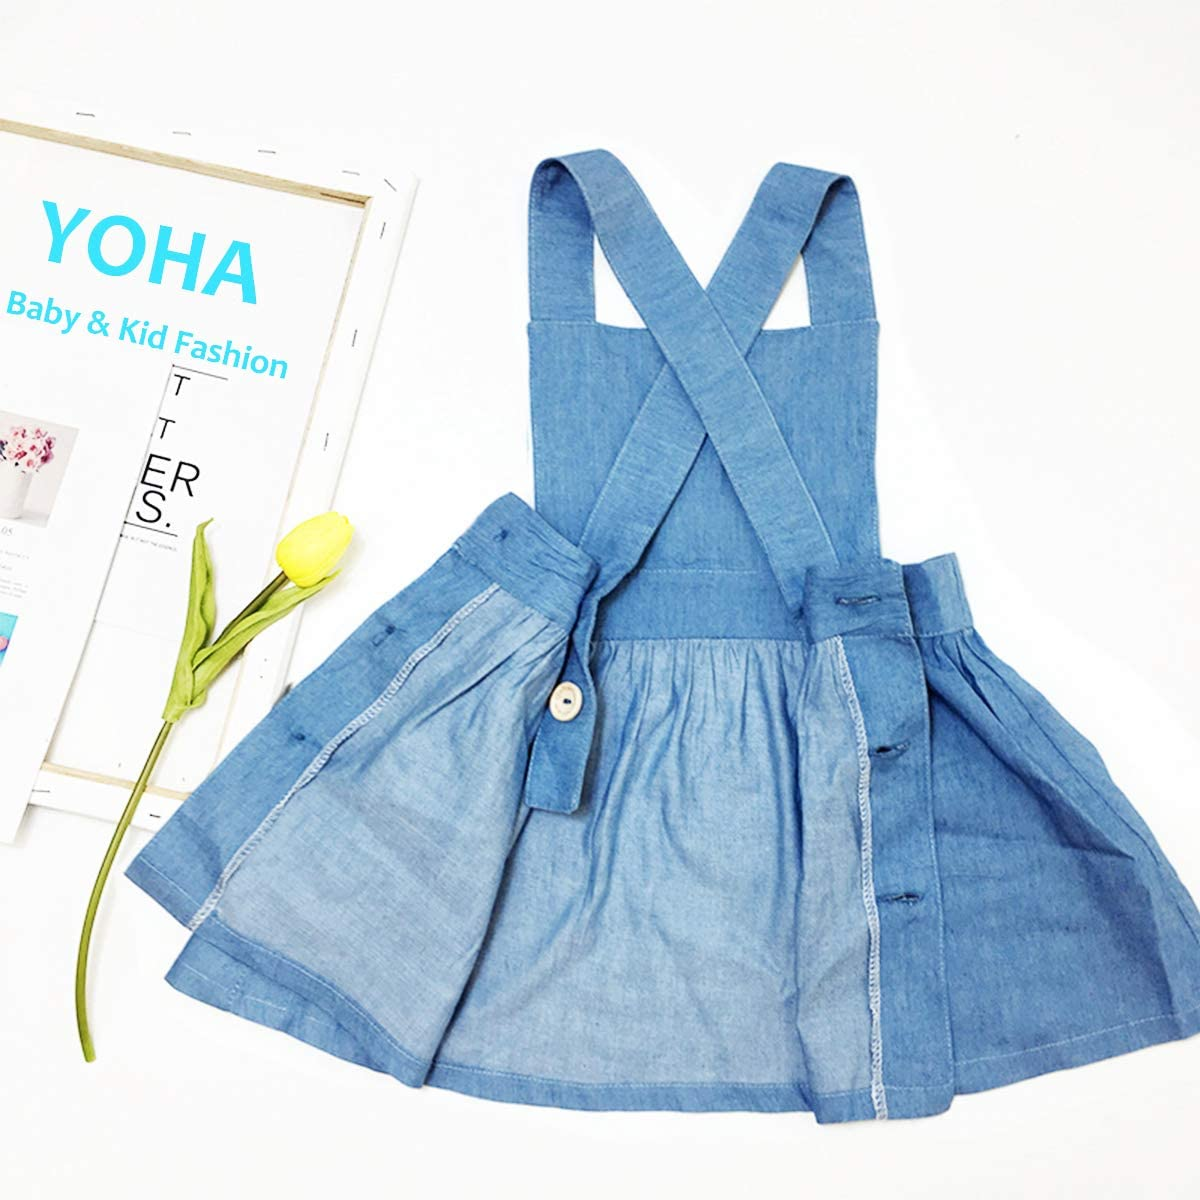 YOHA Baby Girls Denim Soft Jumper Dress Suspender Skirts Pinafore Tutu Dress